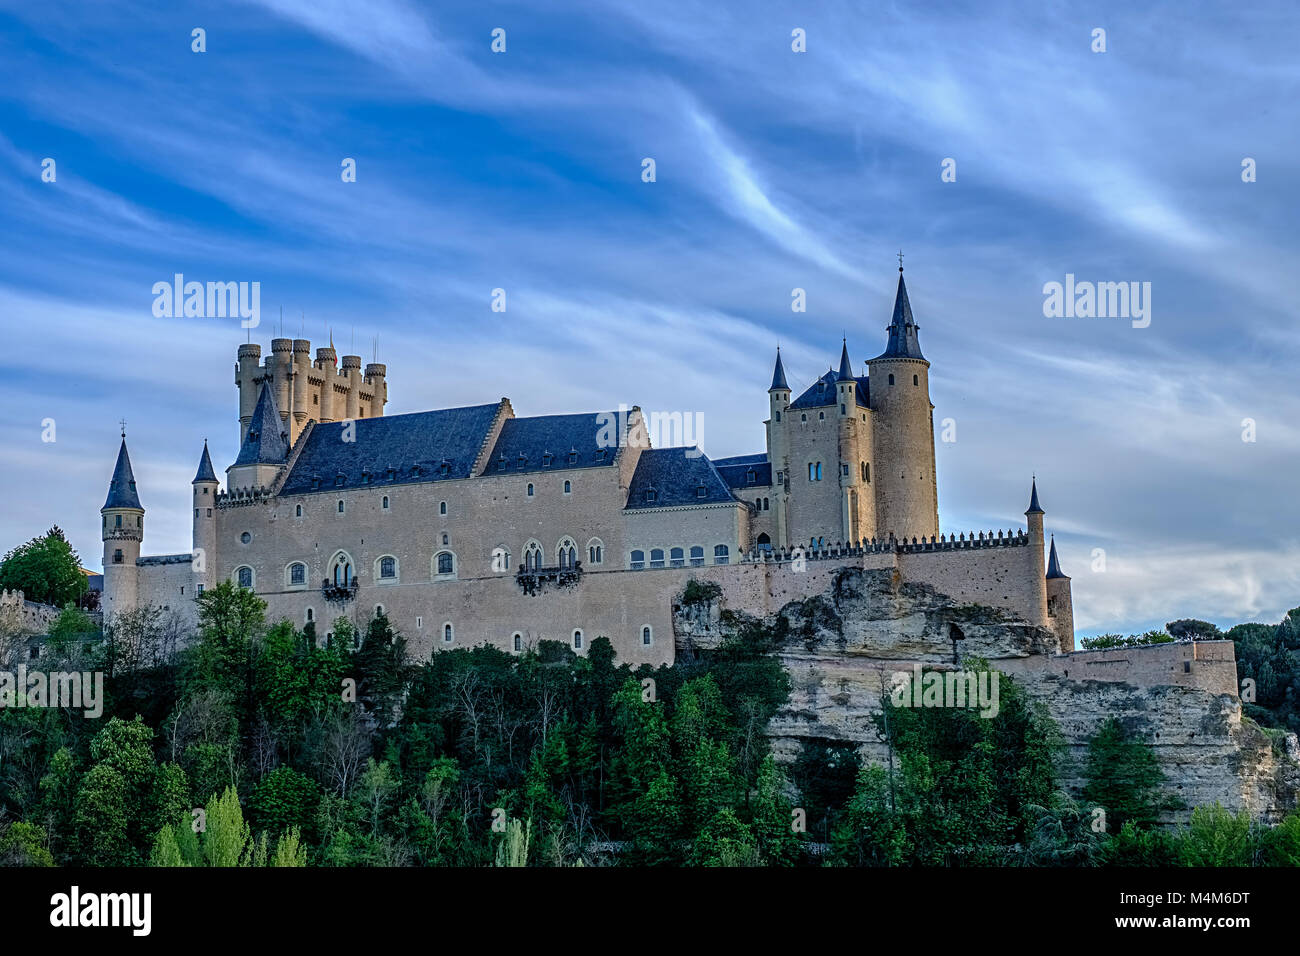 Alcazar, Sergovia, Spain Stock Photo